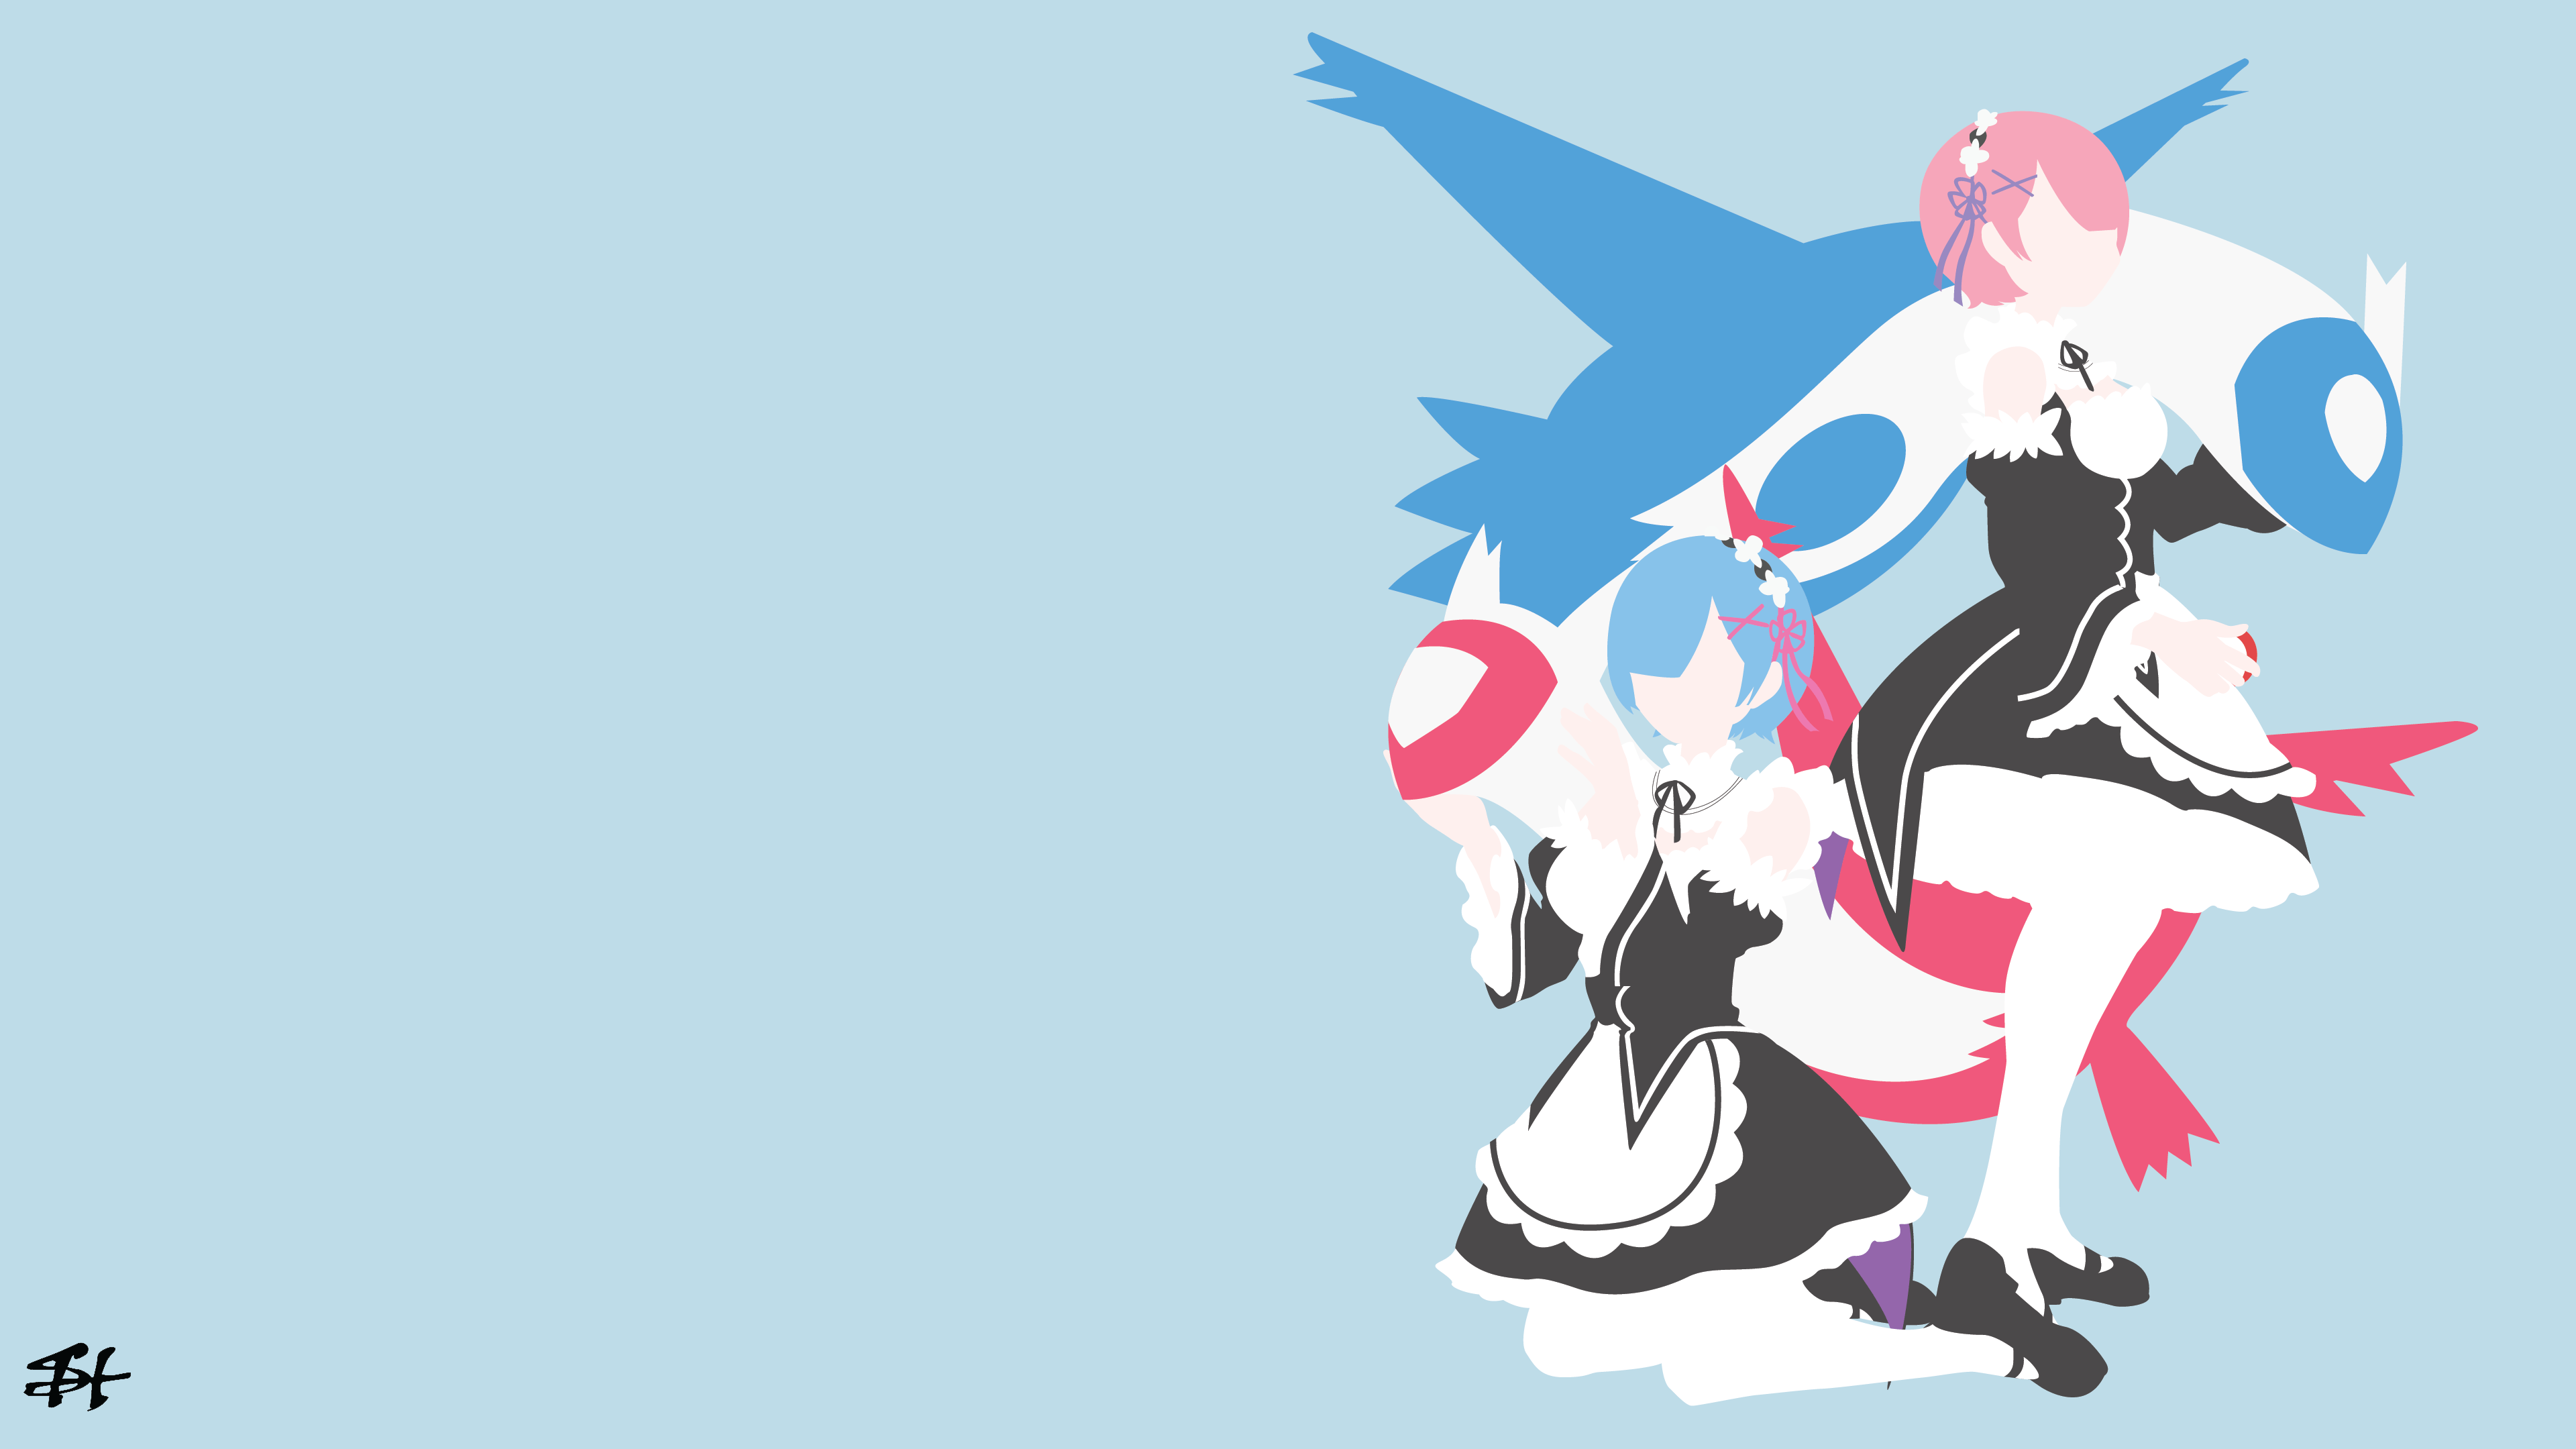 20 Latios (Pokémon) HD Wallpapers | Background Images - Wallpaper Abyss